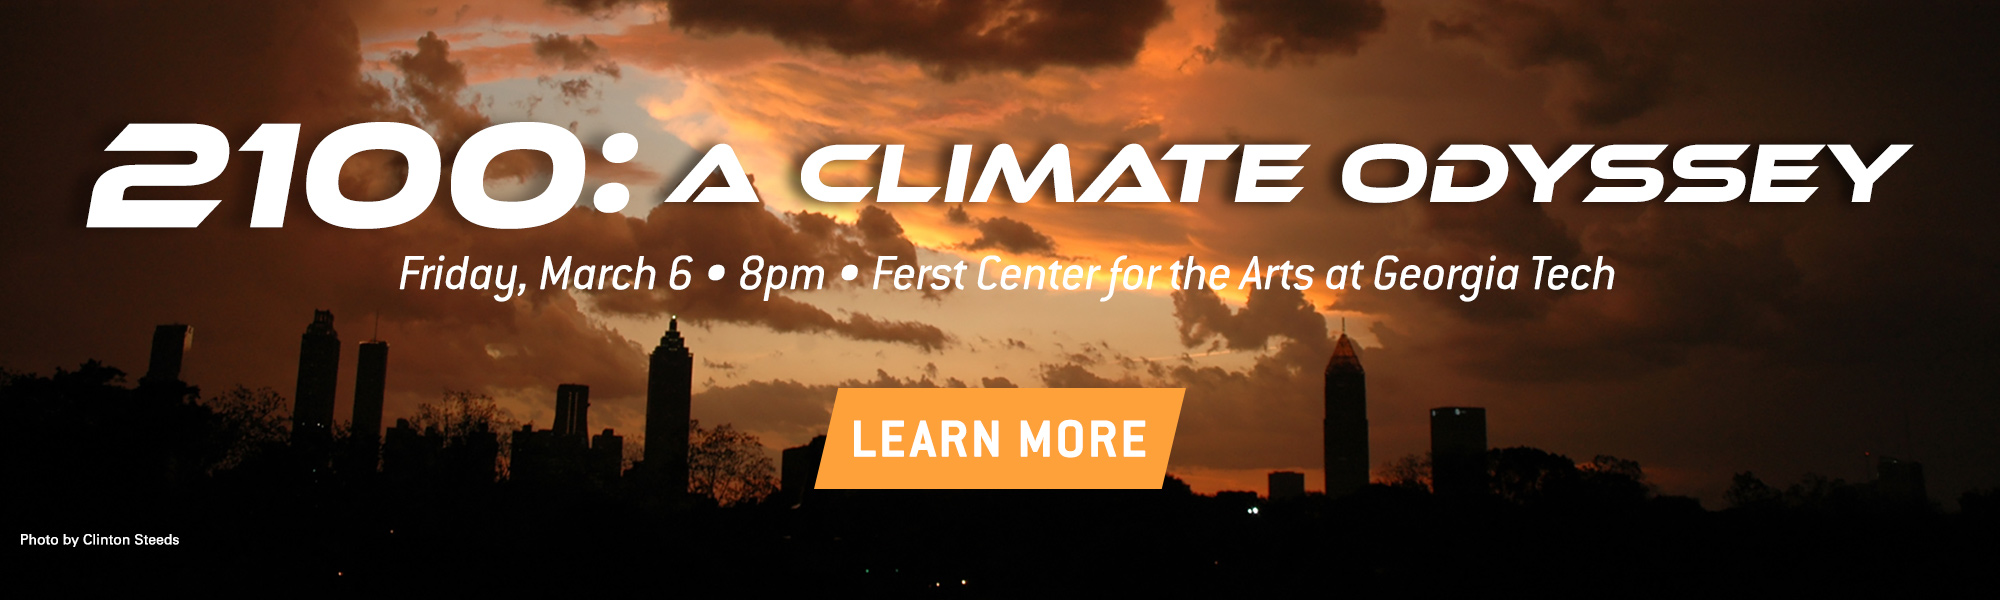 2100: A Climate Odyssey. Friday, March 6. 8pm. Ferst Center for the Arts at Georgia Tech. Learn More!